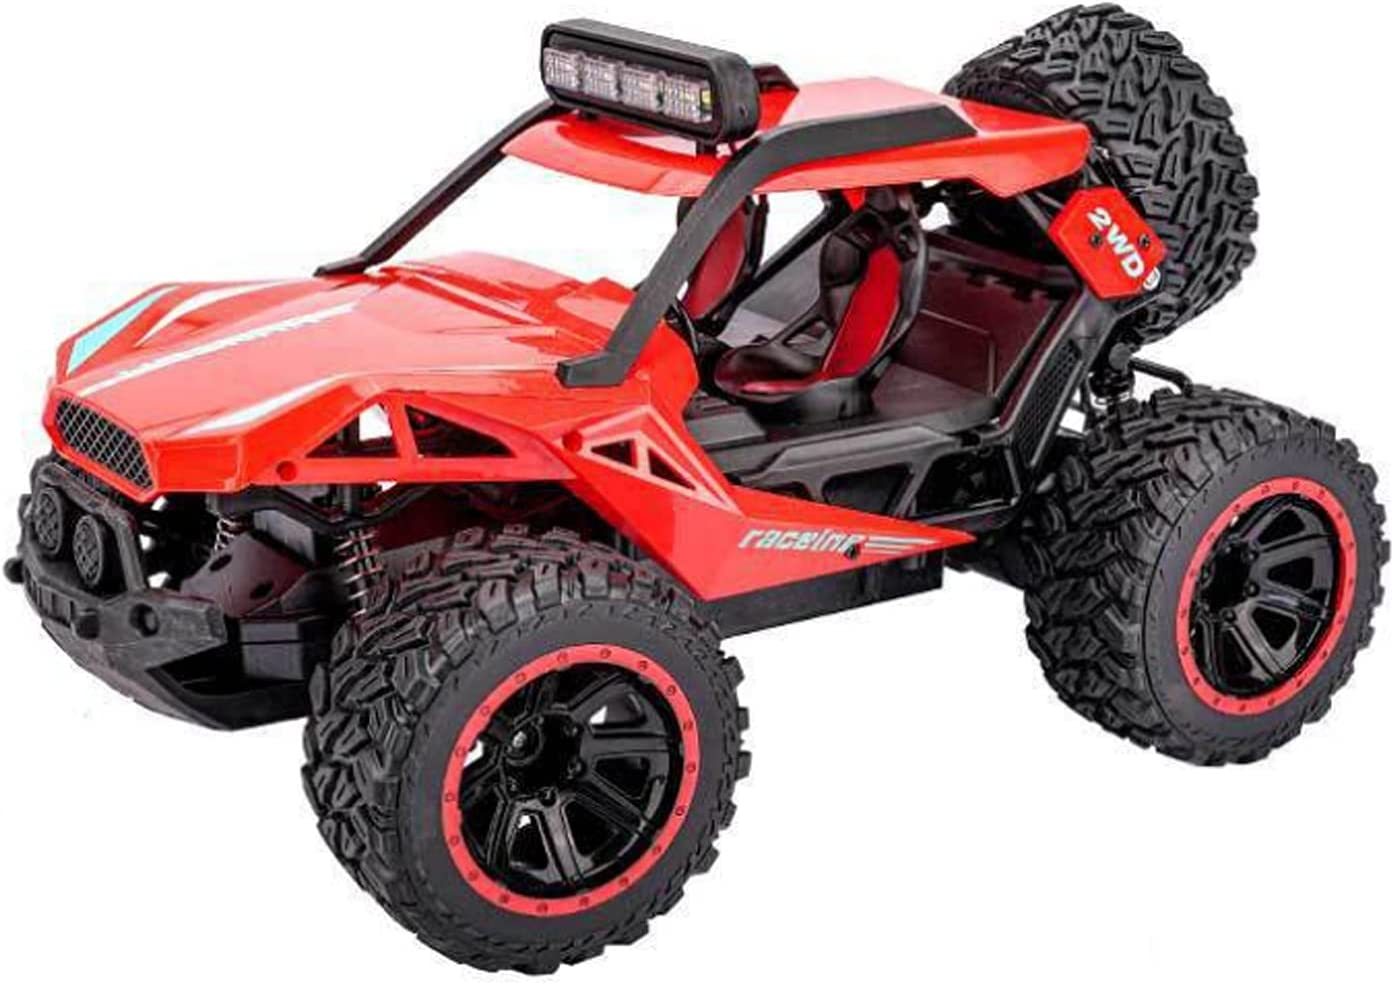 DEORBOB 4WD Remote Control Off-Road Vehicle Rc Seattle Mall Car 2021 autumn and winter new 1:10 2.4GHz S